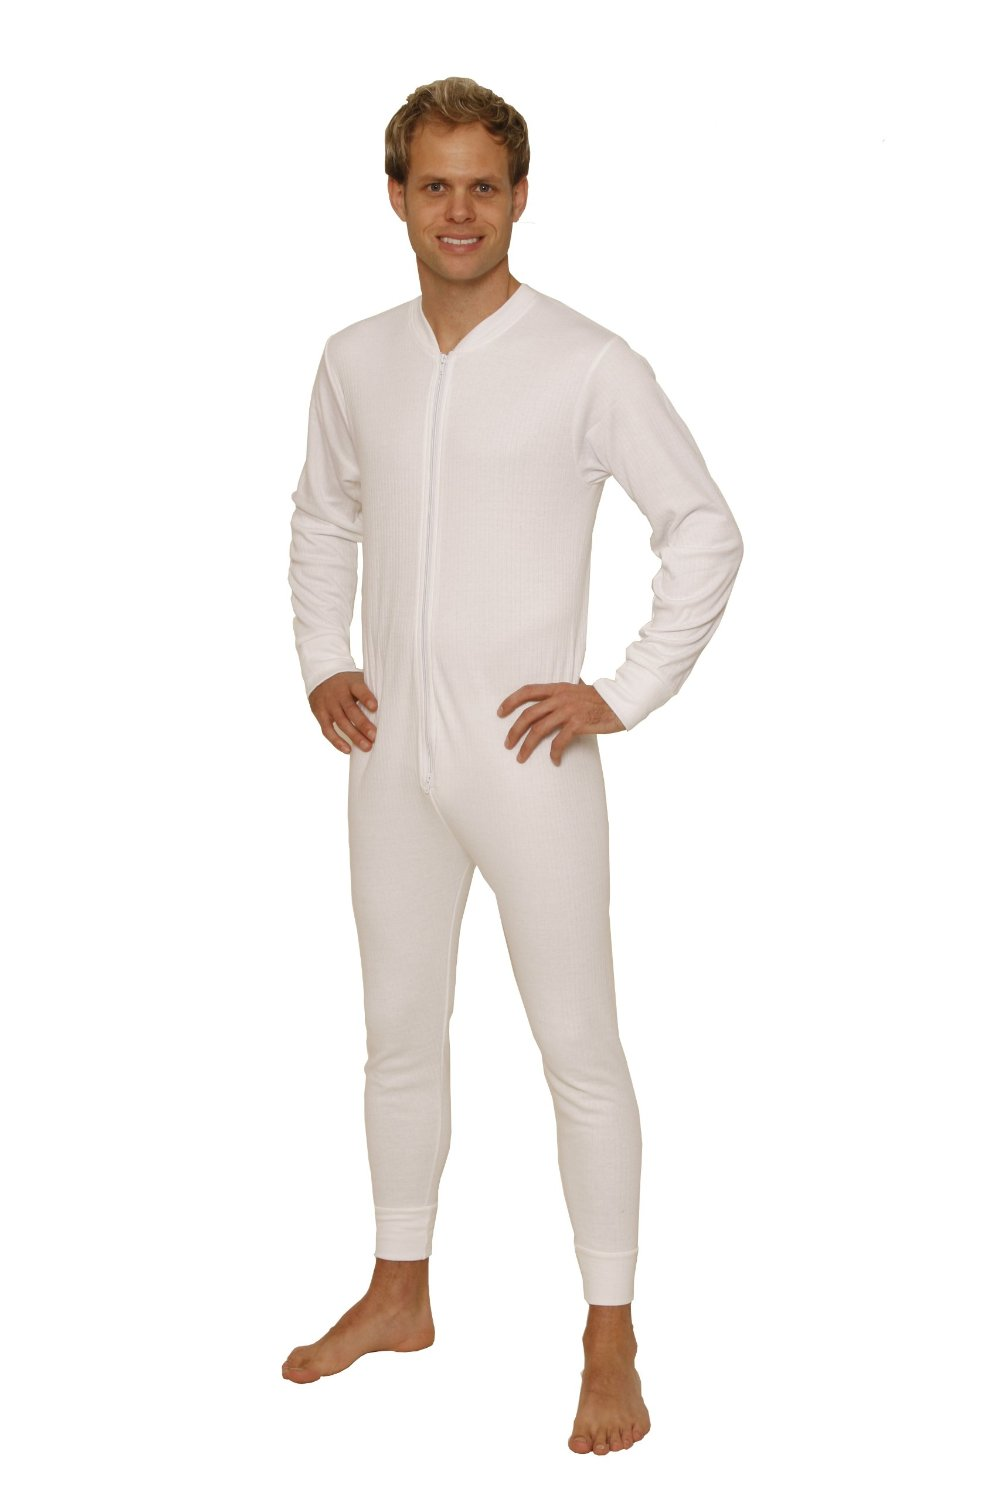 OCTAVE® Ski Thermals : Mens All In One Thermal Underwear / Union ...